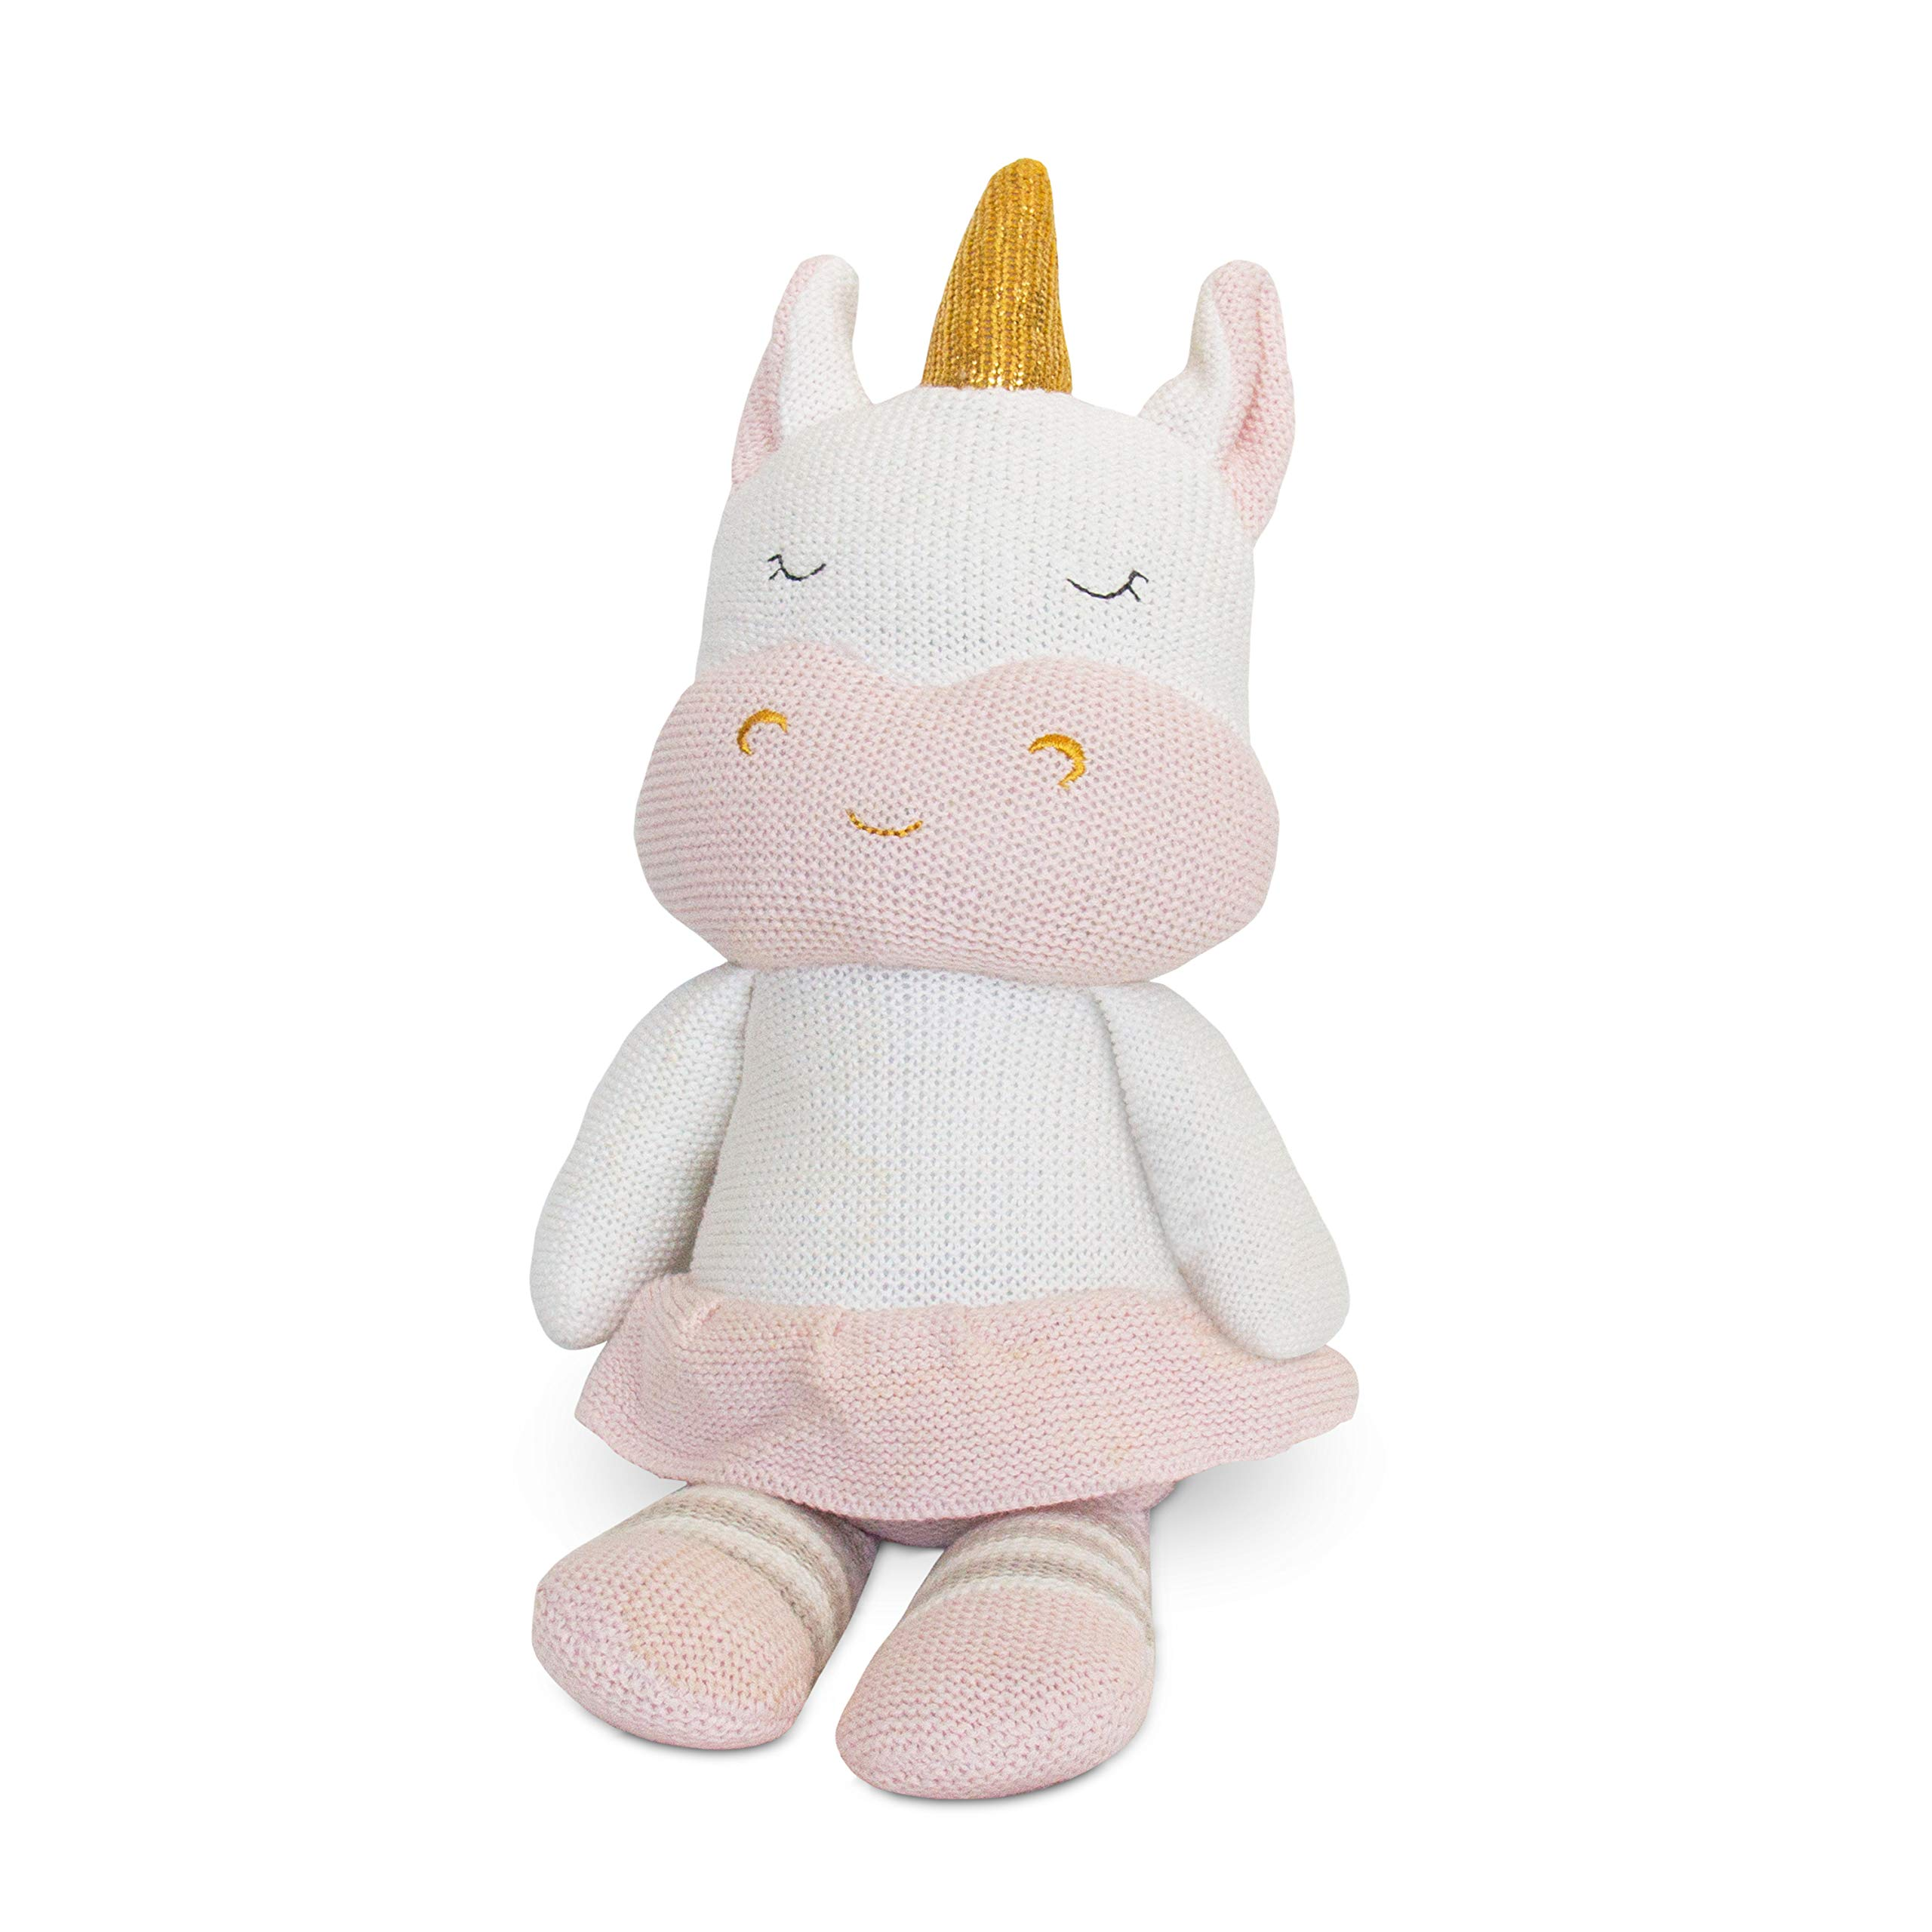 Living Textiles Plush Toy (Kenzie Unicorn). Knitted Stuffed Animal Toy with Rattle. by Living Textiles